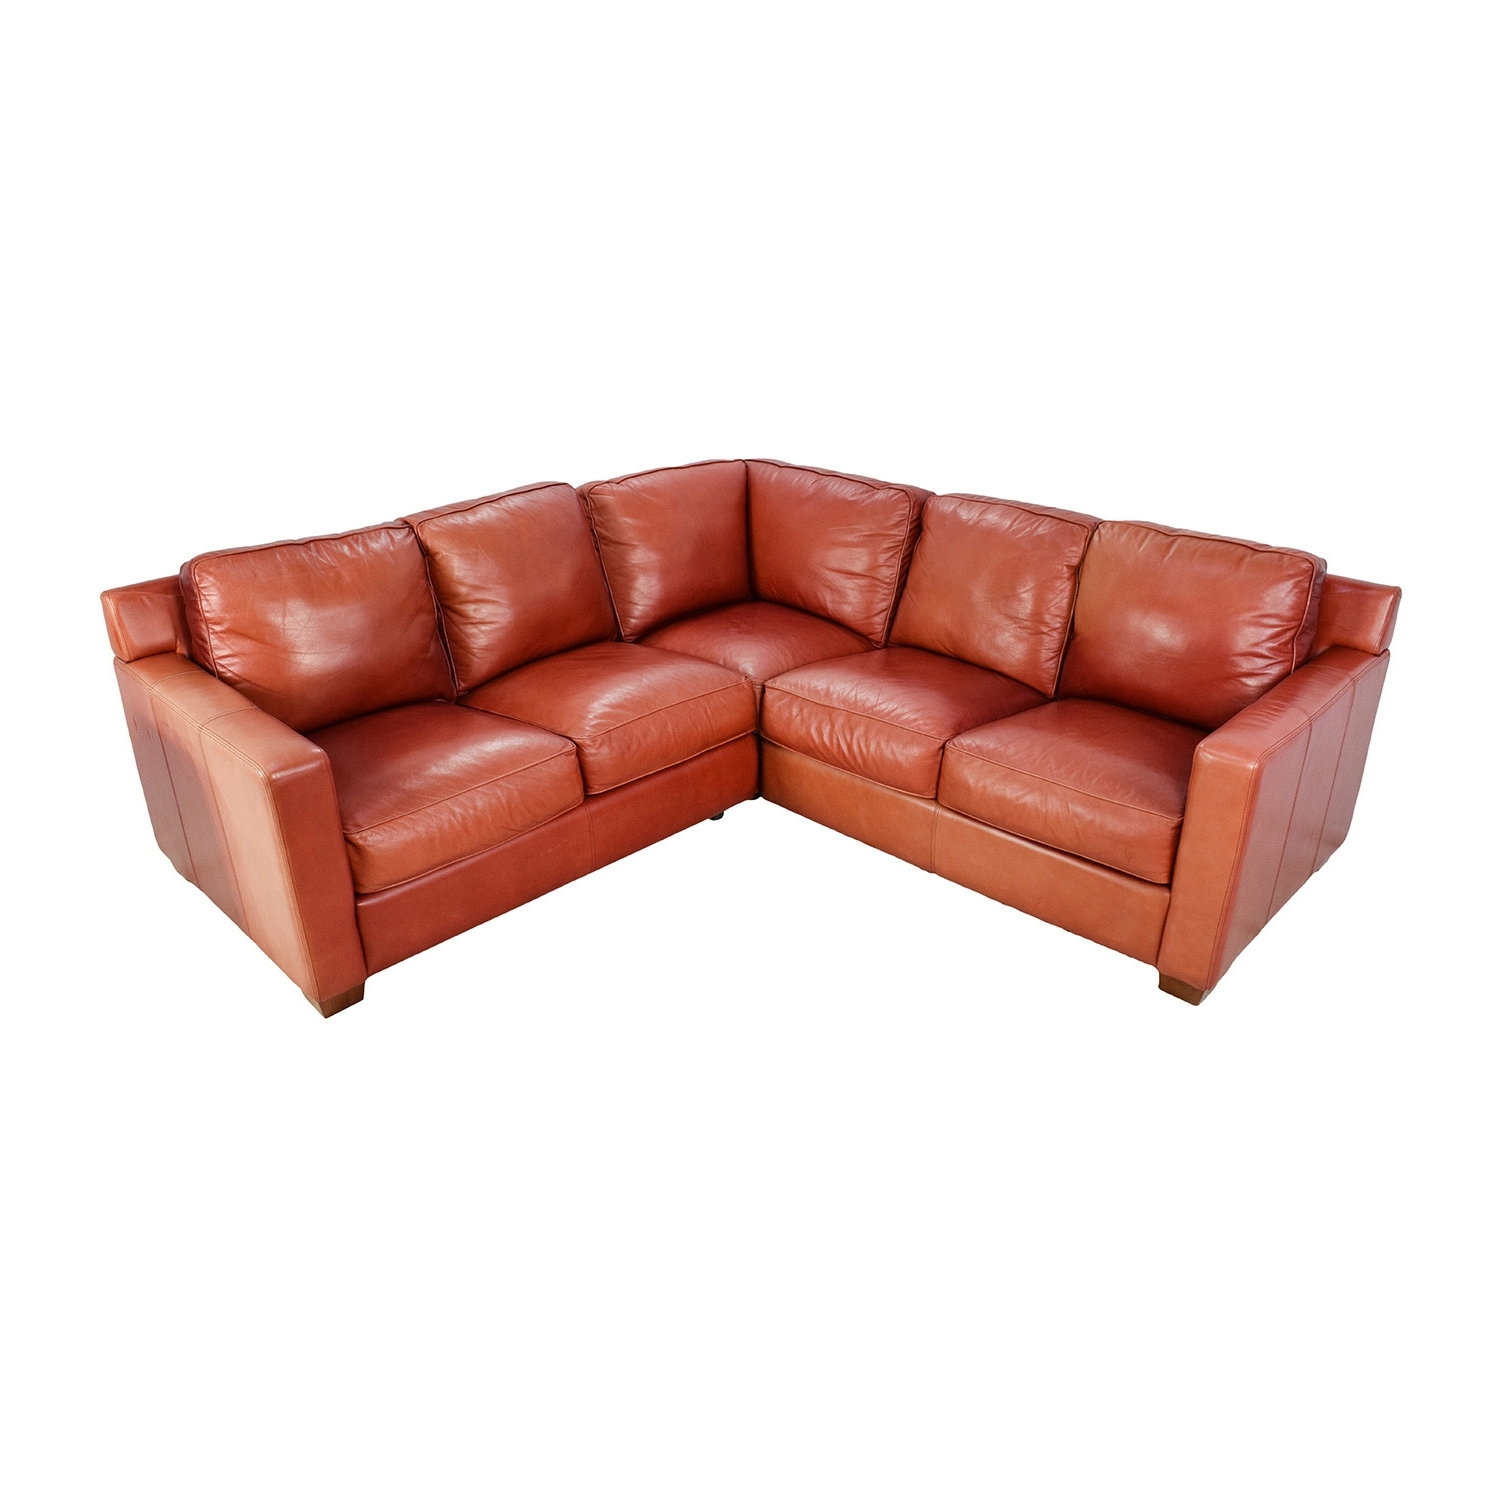 [%68% Off – Thomasville Thomasville Red Leather Sectional / Sofas Pertaining To Current Thomasville Sectional Sofas|Thomasville Sectional Sofas With Best And Newest 68% Off – Thomasville Thomasville Red Leather Sectional / Sofas|Most Current Thomasville Sectional Sofas With 68% Off – Thomasville Thomasville Red Leather Sectional / Sofas|Recent 68% Off – Thomasville Thomasville Red Leather Sectional / Sofas Intended For Thomasville Sectional Sofas%] (View 1 of 20)